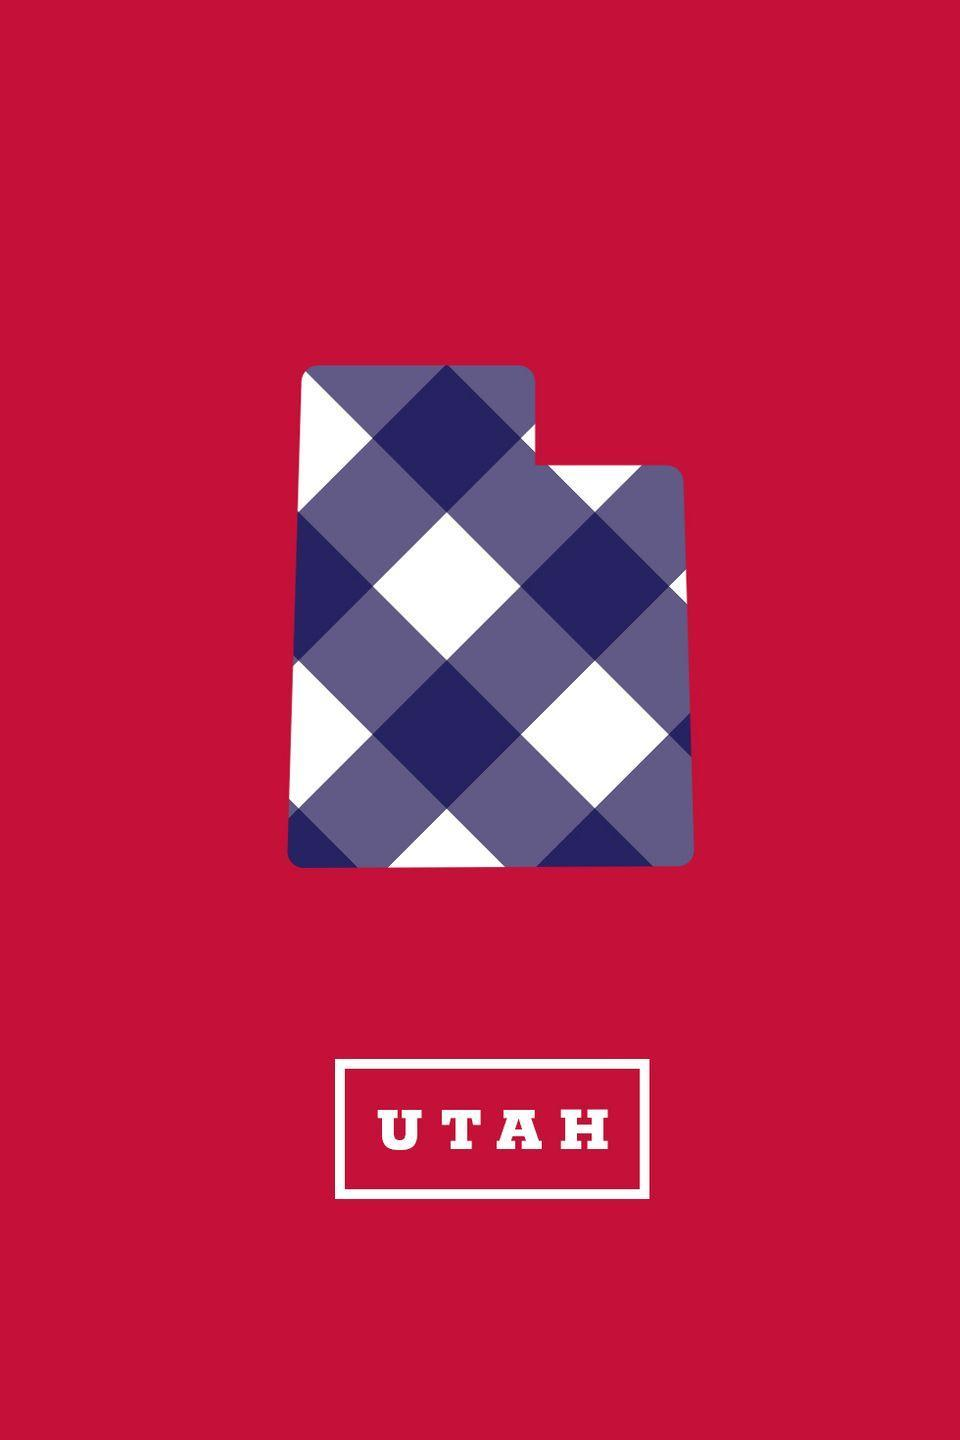 """<p>•It's red or blue on game day.</p><p>•You've made <a href=""""https://www.countryliving.com/food-drinks/a40938/cheesy-funeral-potatoes/"""" rel=""""nofollow noopener"""" target=""""_blank"""" data-ylk=""""slk:funeral potatoes"""" class=""""link rapid-noclick-resp"""">funeral potatoes</a> for a gathering (and it wasn't necessarily a <a href=""""https://www.countryliving.com/life/g4513/unspoken-funeral-etiquette-rules/"""" rel=""""nofollow noopener"""" target=""""_blank"""" data-ylk=""""slk:funeral"""" class=""""link rapid-noclick-resp"""">funeral</a>).</p><p>•You always go to the parade and see fireworks for <a href=""""https://en.wikipedia.org/wiki/Pioneer_Day_(Utah)"""" rel=""""nofollow noopener"""" target=""""_blank"""" data-ylk=""""slk:Pioneer Day"""" class=""""link rapid-noclick-resp"""">Pioneer Day</a>.</p>"""